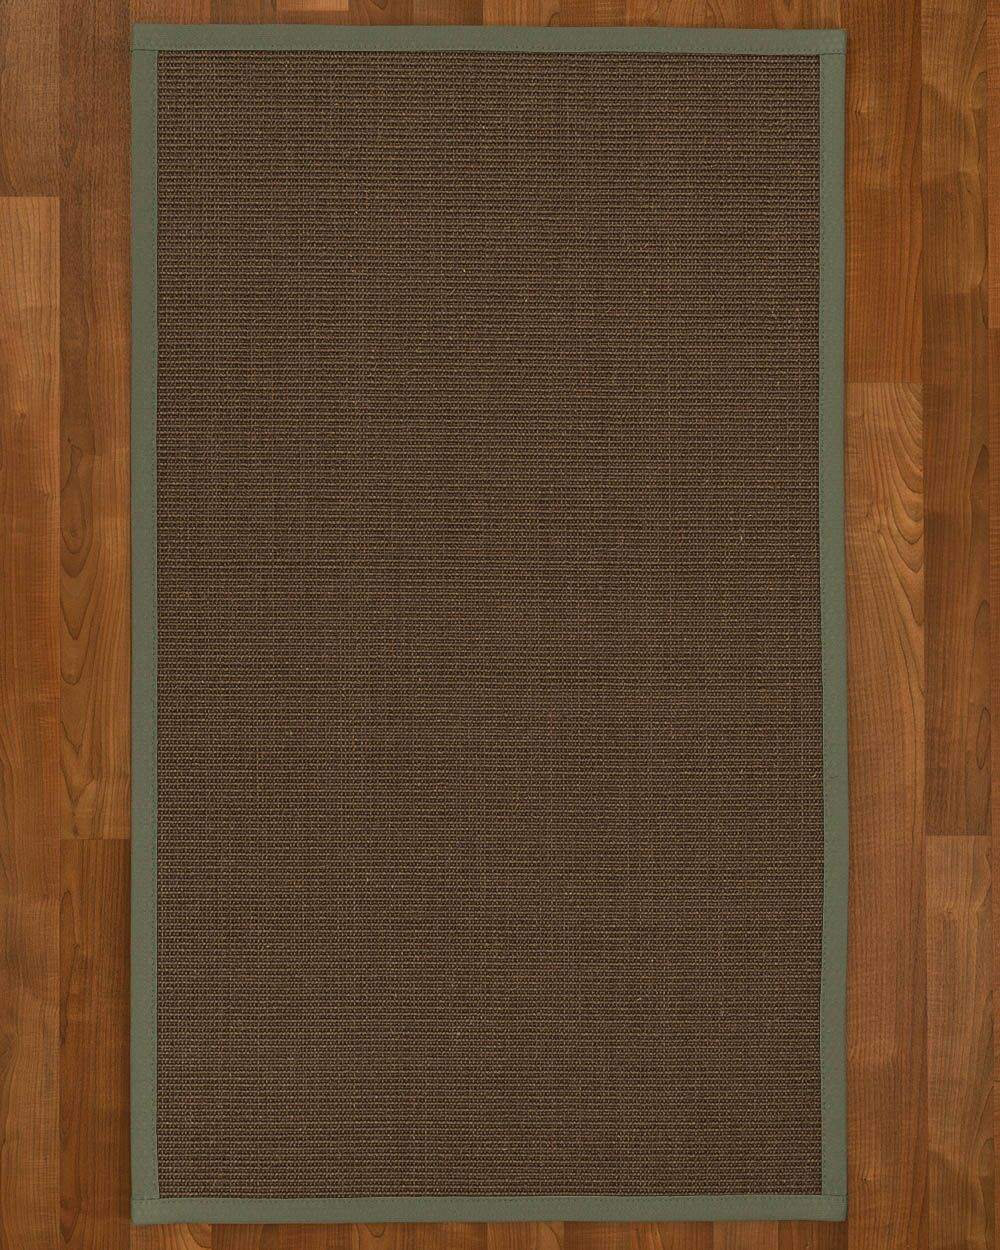 Beck Solid Hand Woven Brown Area Rug Rug Size: Rectangle 5' X 8'